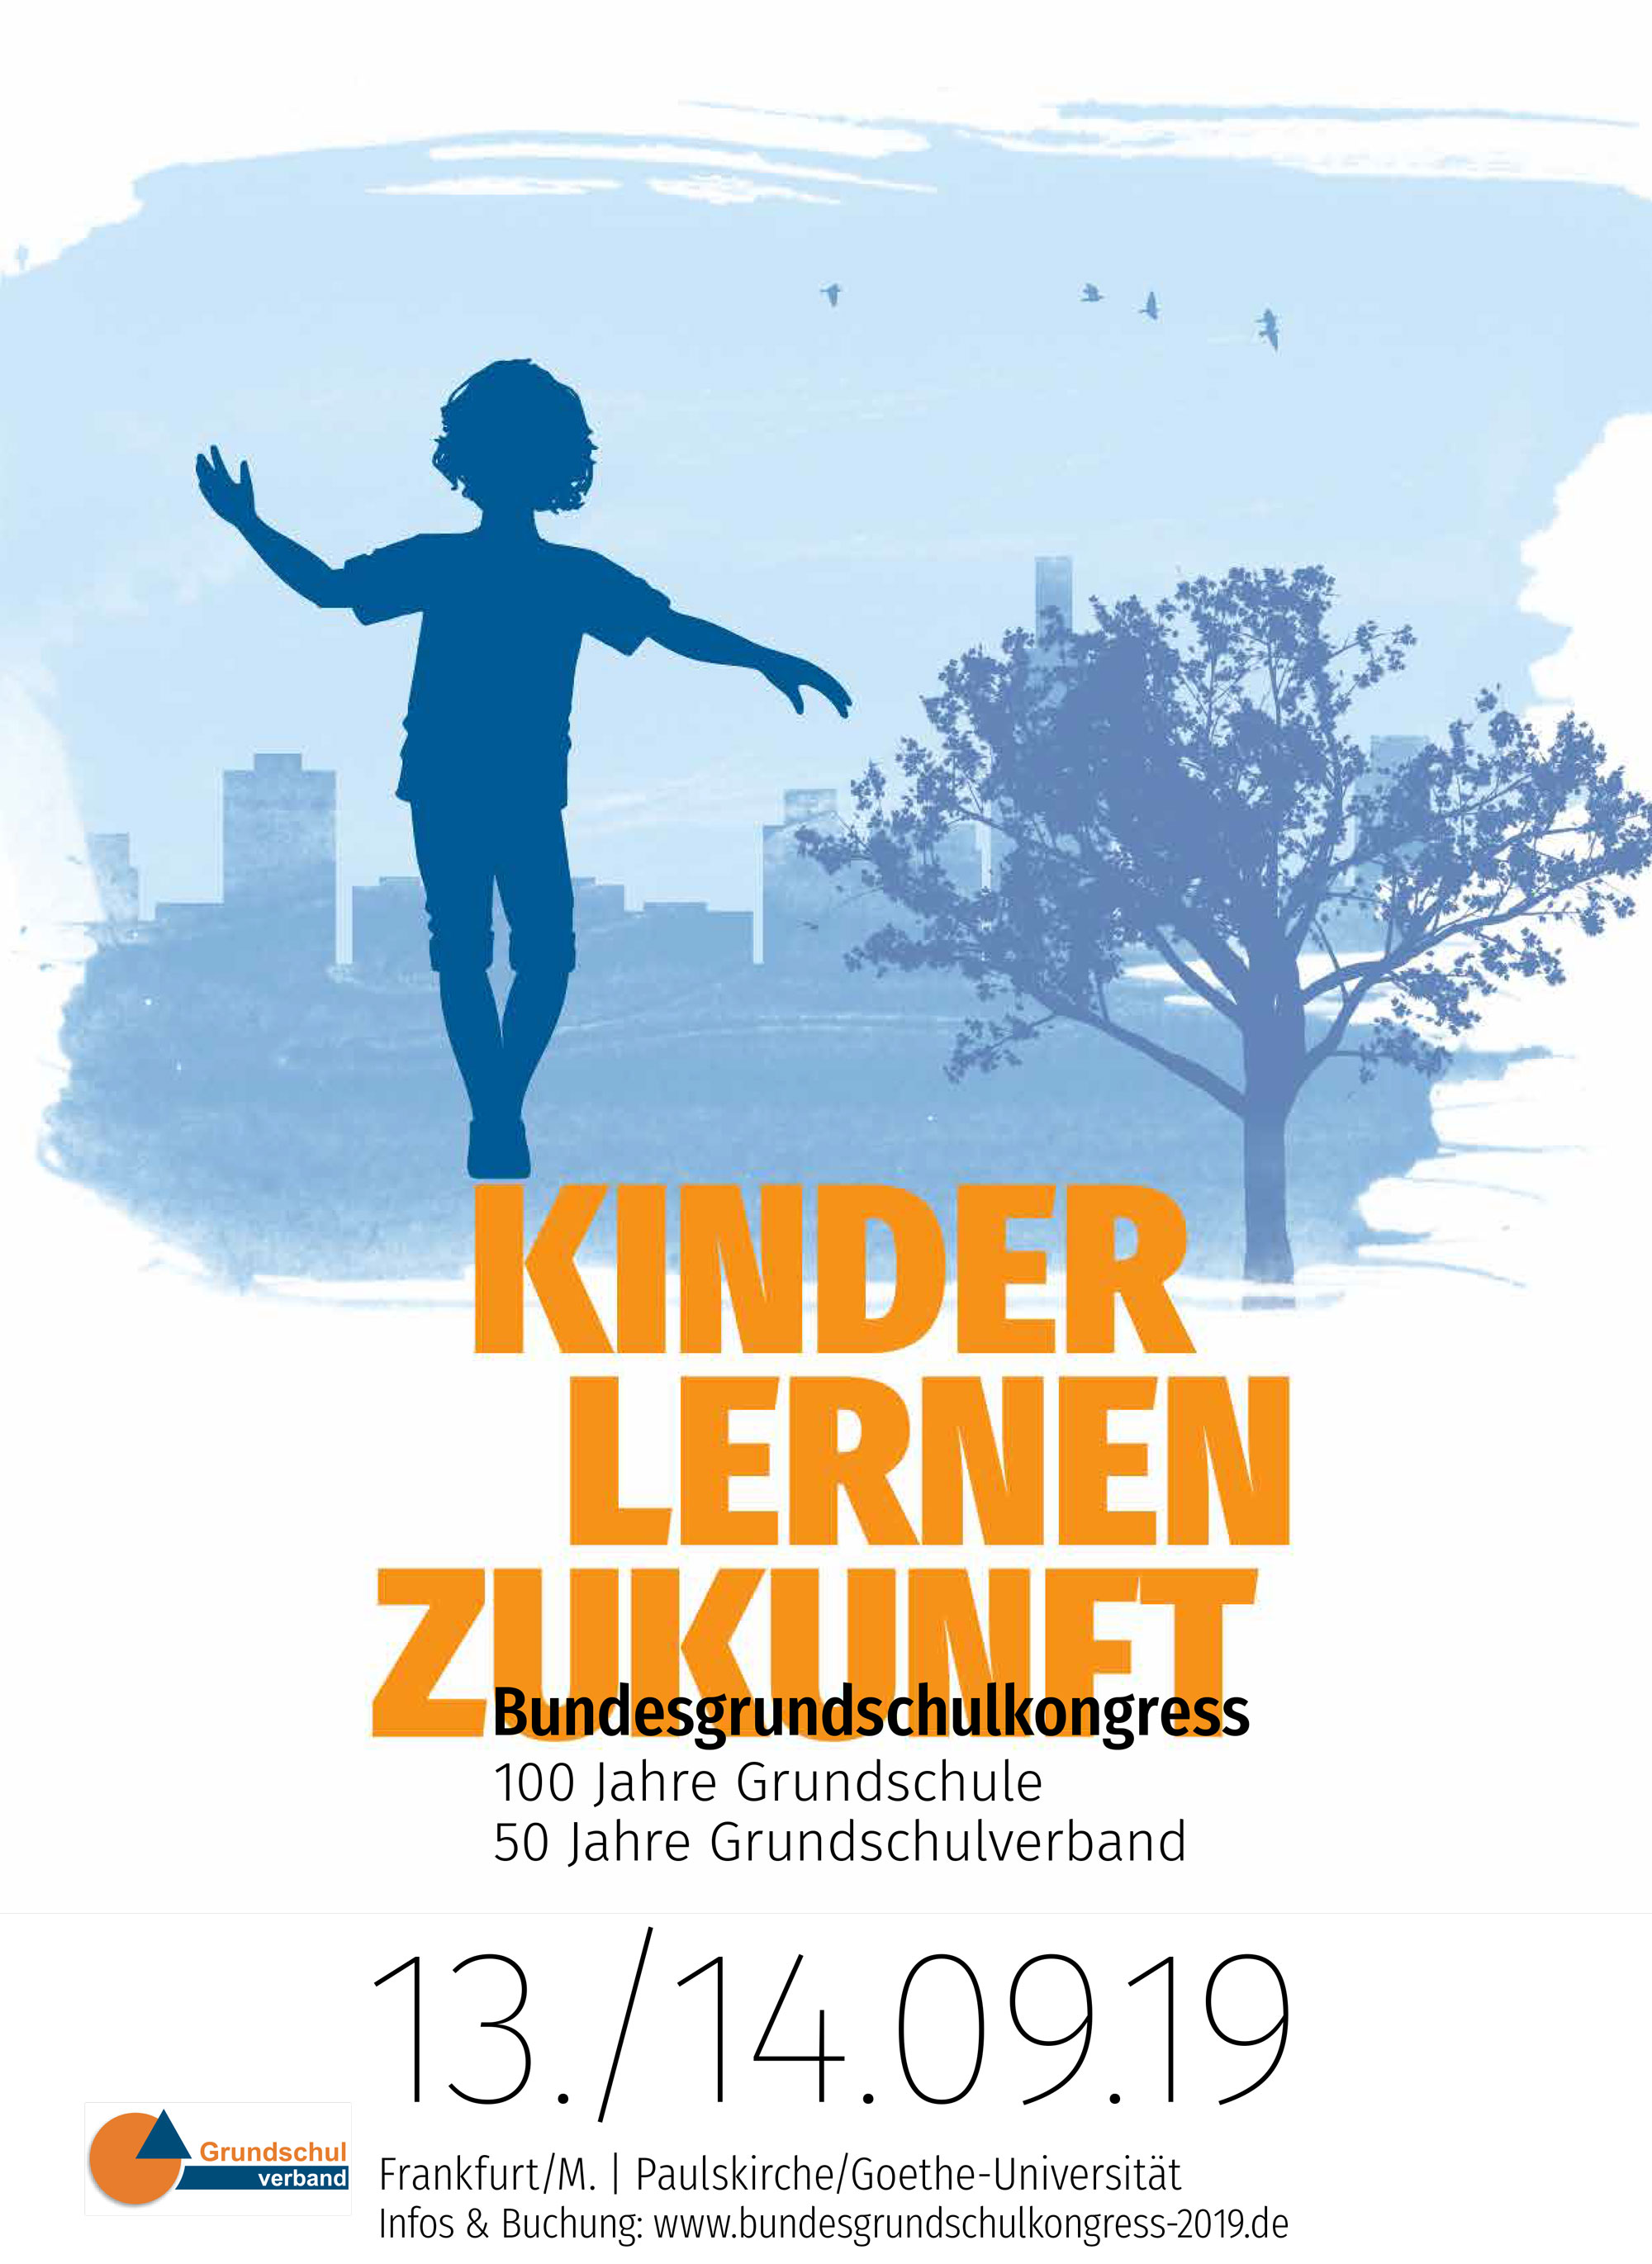 Bundesgrundschulkongress 2019